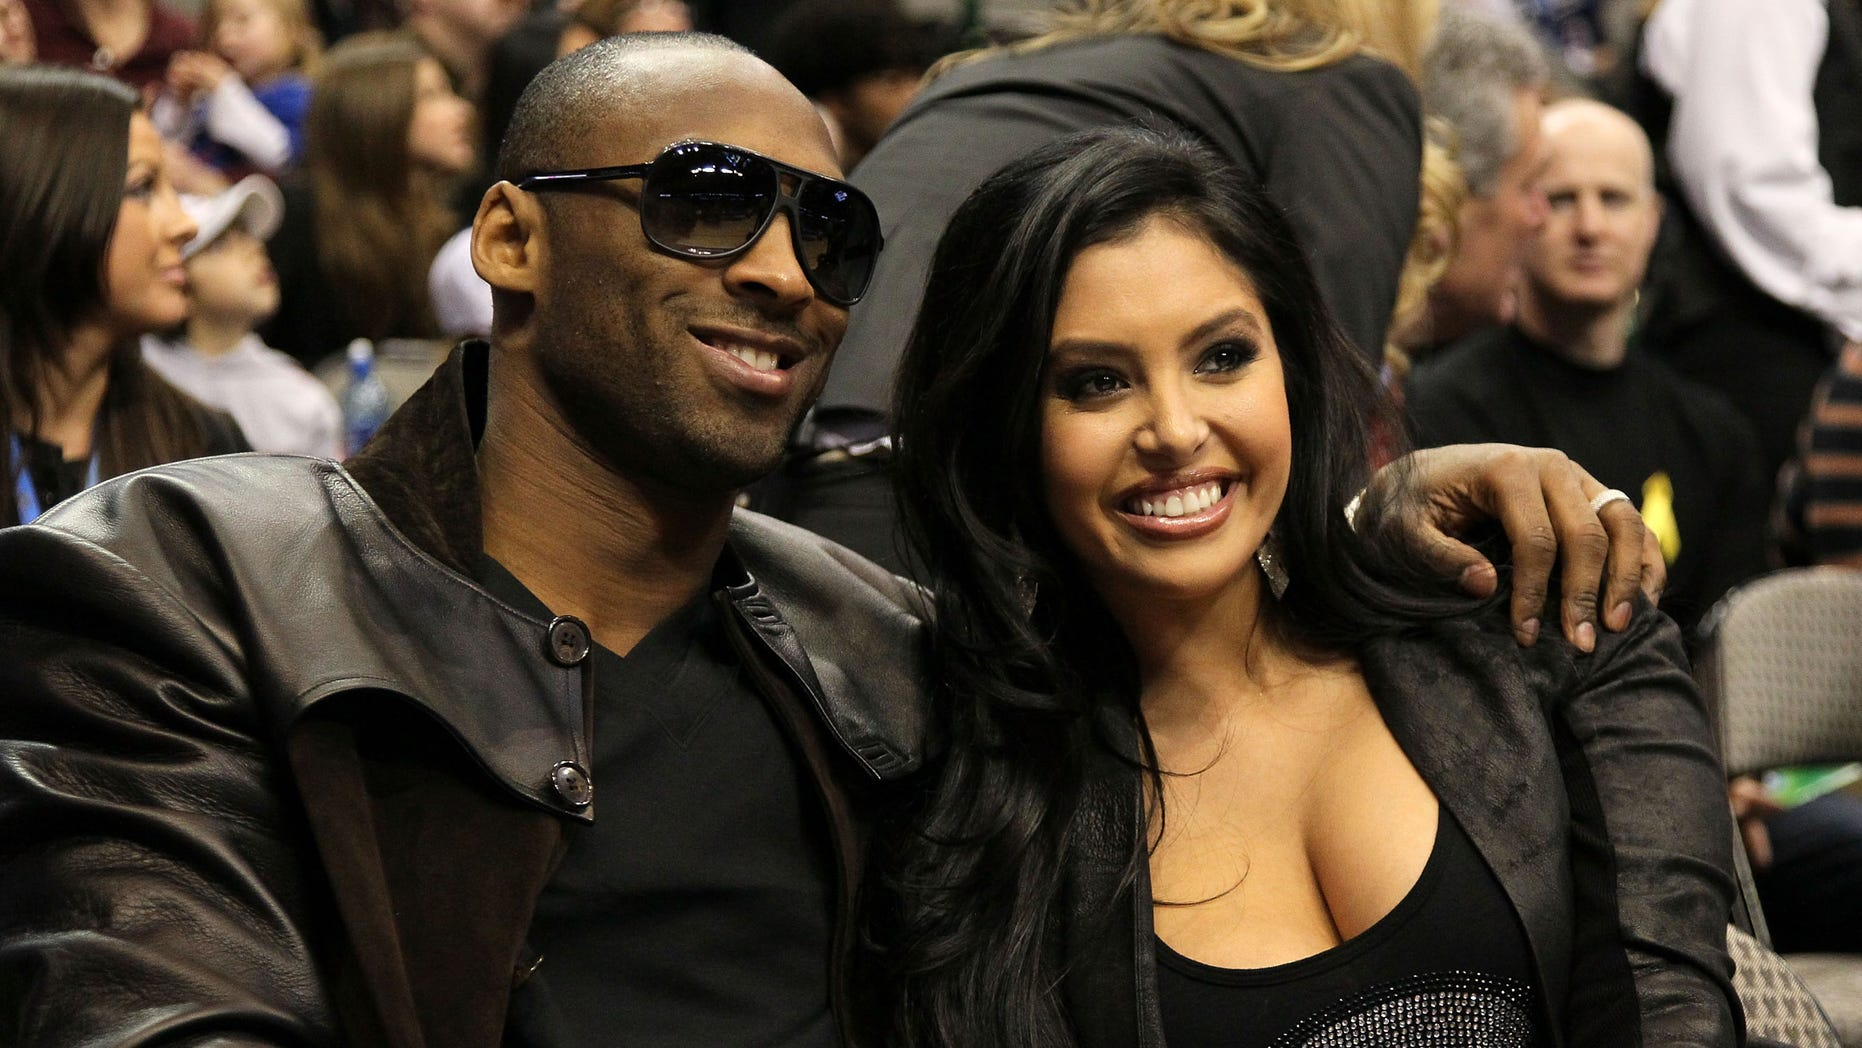 DALLAS - FEBRUARY 13:  Kobe Bryant #24 of the Los Angeles Lakers smiles with his wife Vanessa Lynne during the Taco Bell Skills Challenge on All-Star Saturday Night, part of 2010 NBA All-Star Weekend at American Airlines Center on February 13, 2010 in Dallas, Texas. NOTE TO USER: User expressly acknowledges and agrees that, by downloading and or using this photograph, User is consenting to the terms and conditions of the Getty Images License Agreement.  (Photo by Jed Jacobsohn/Getty Images)